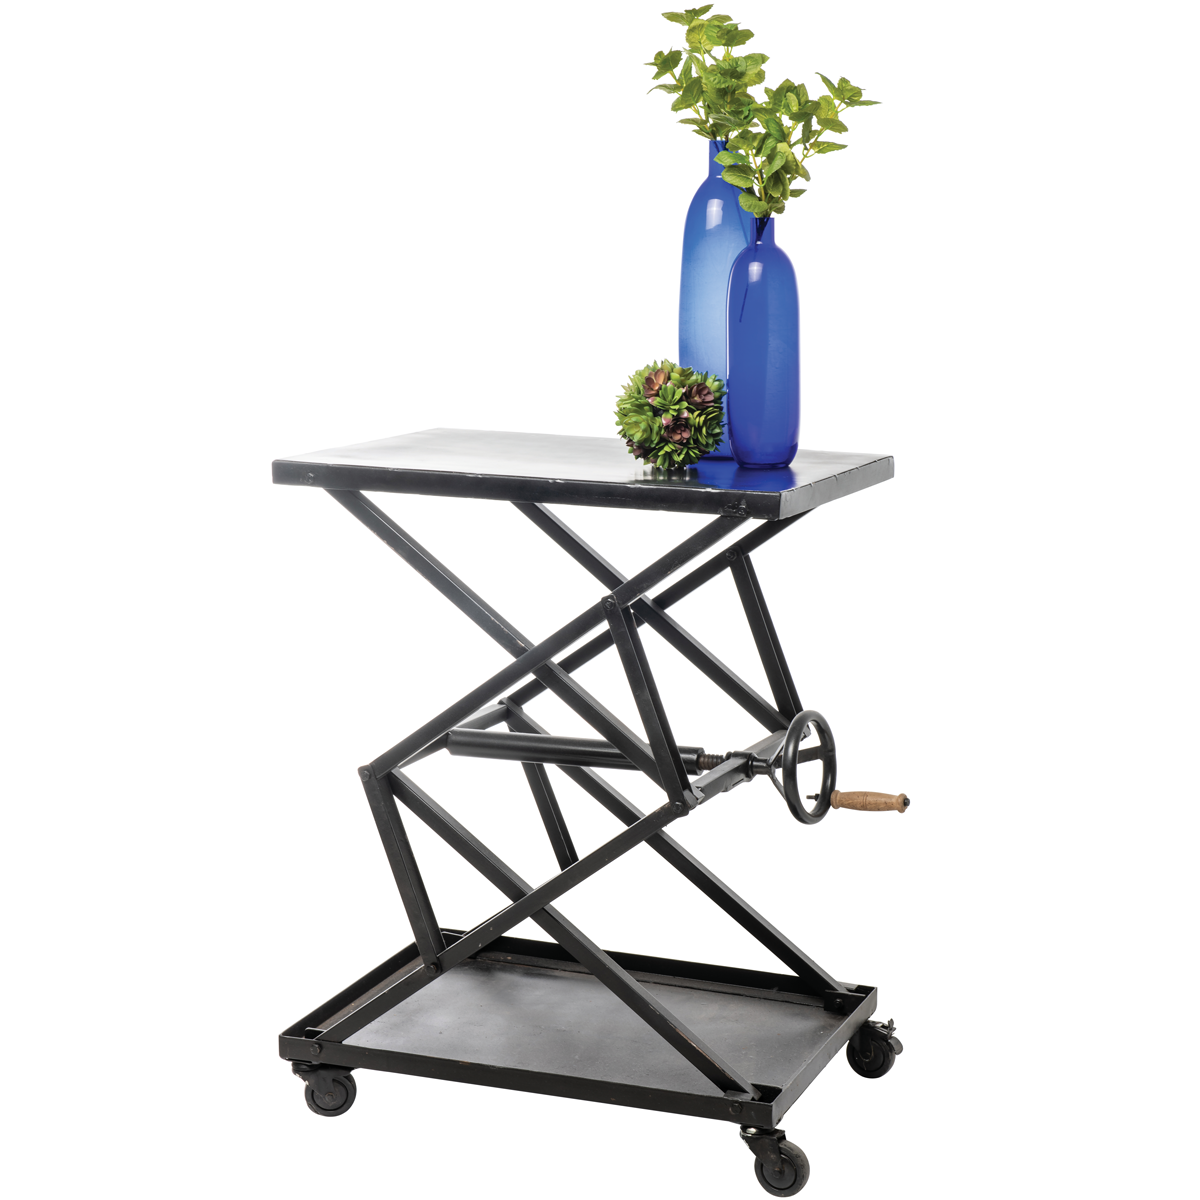 Expressly Hubert Black Iron Crank Trolley Table